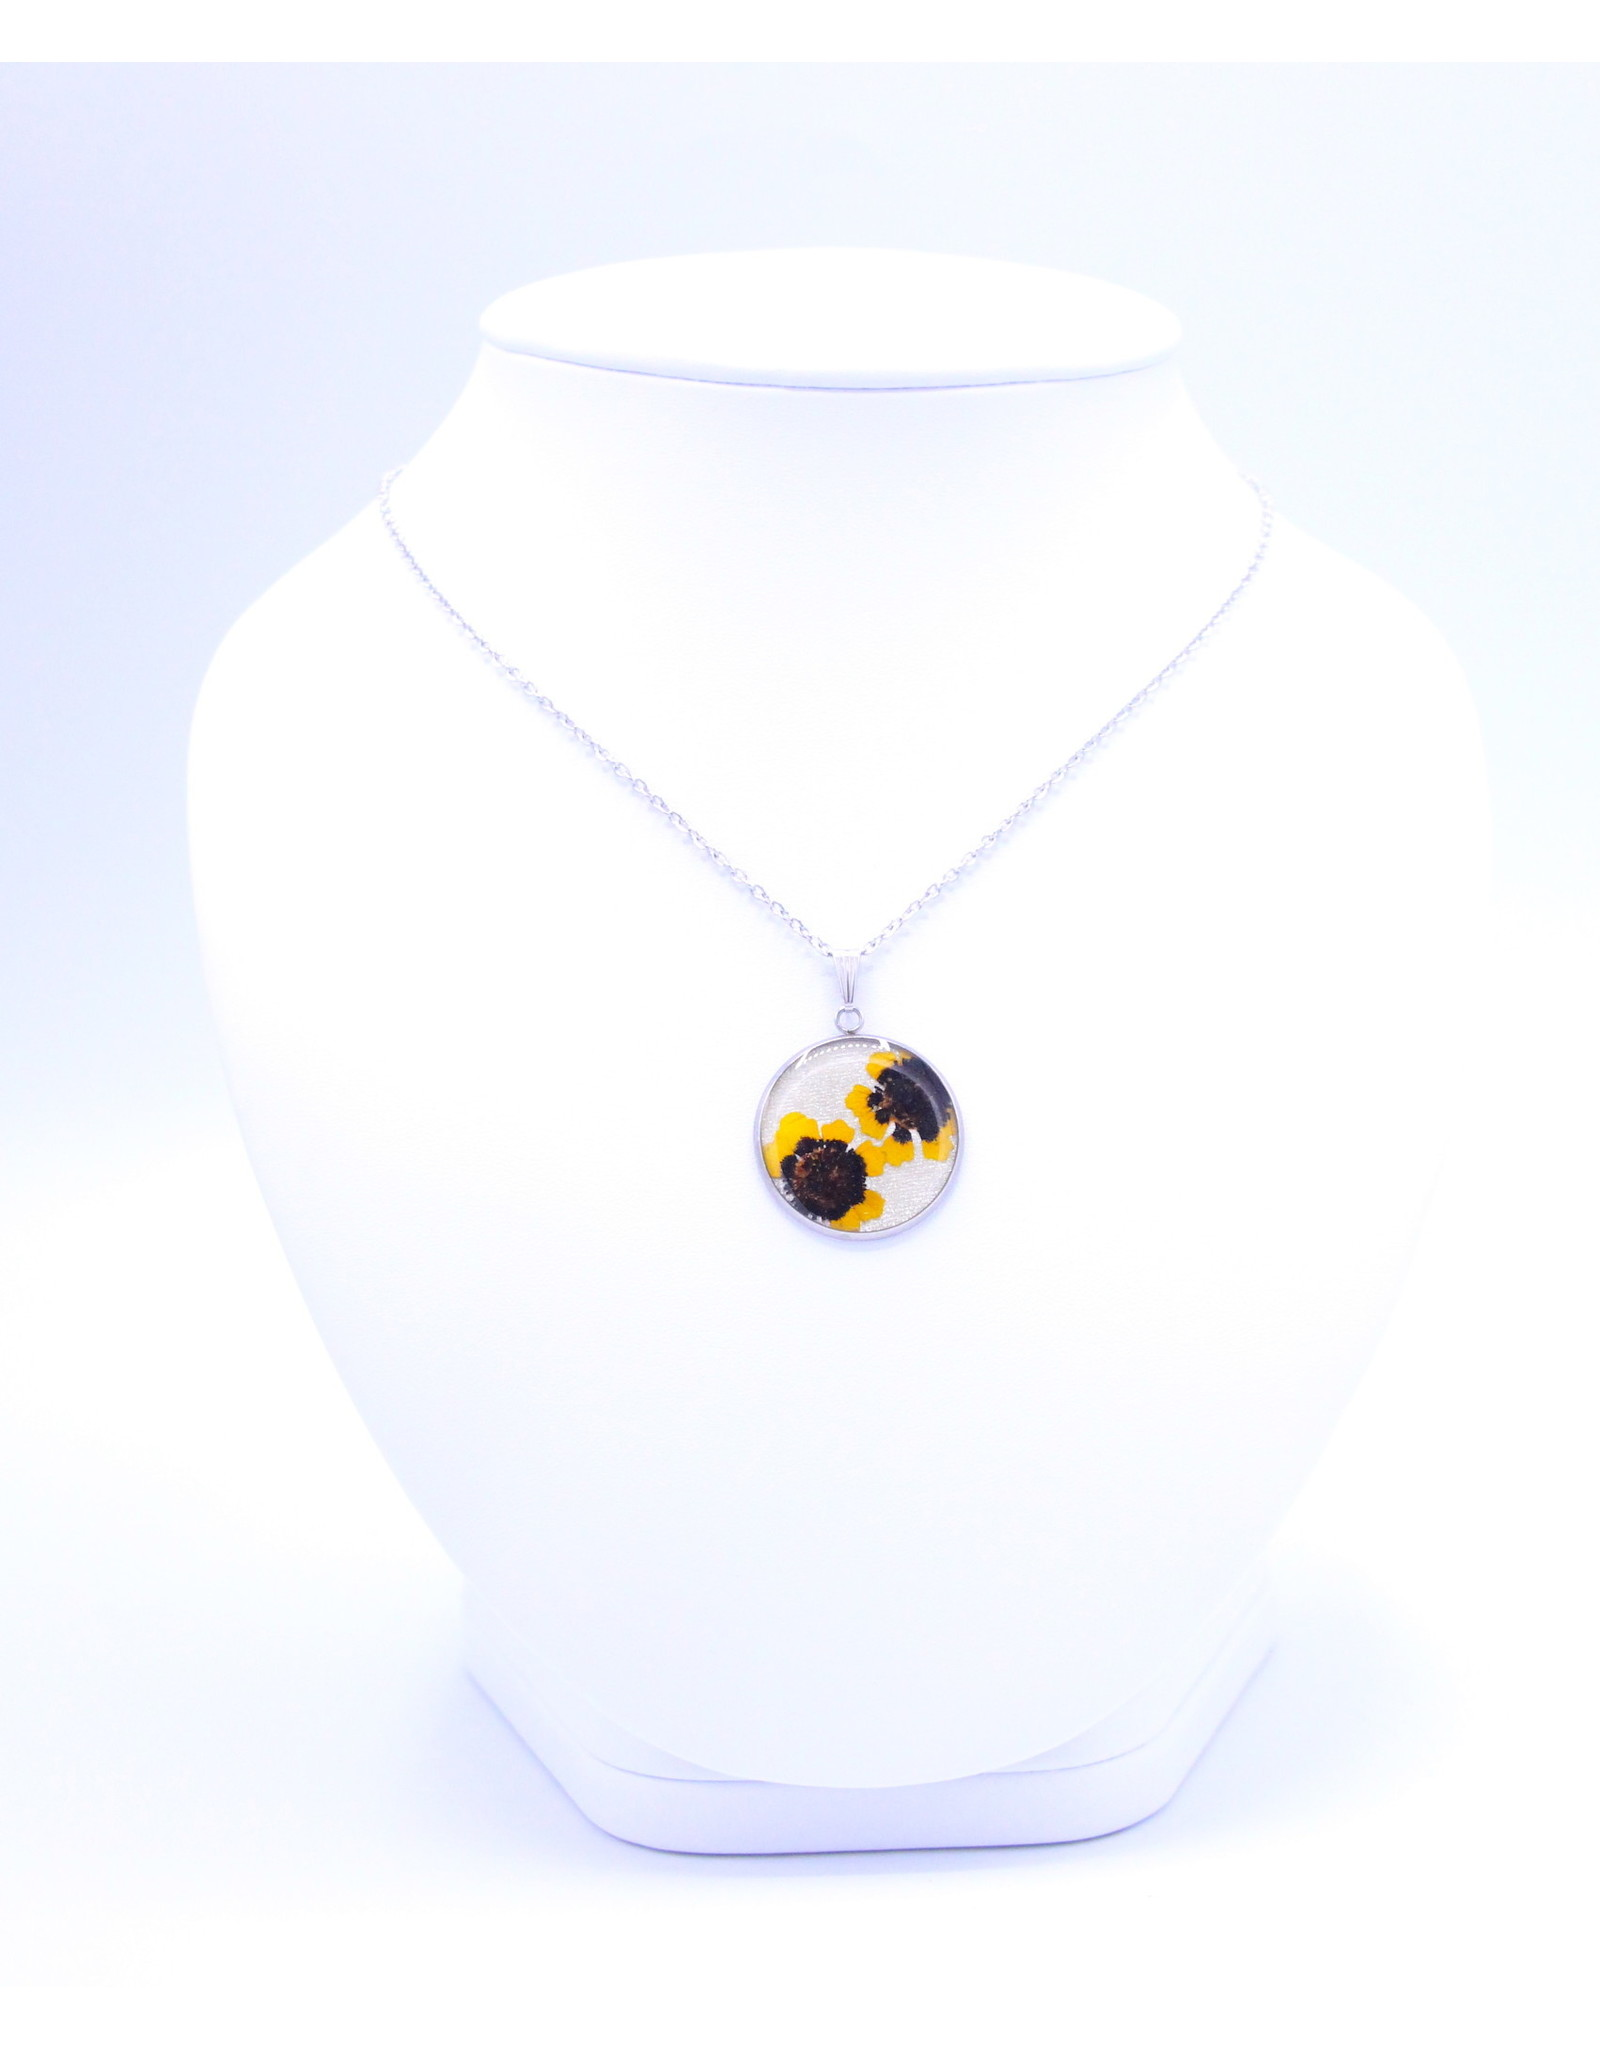 25mm Coreopsis Necklace - N25C1